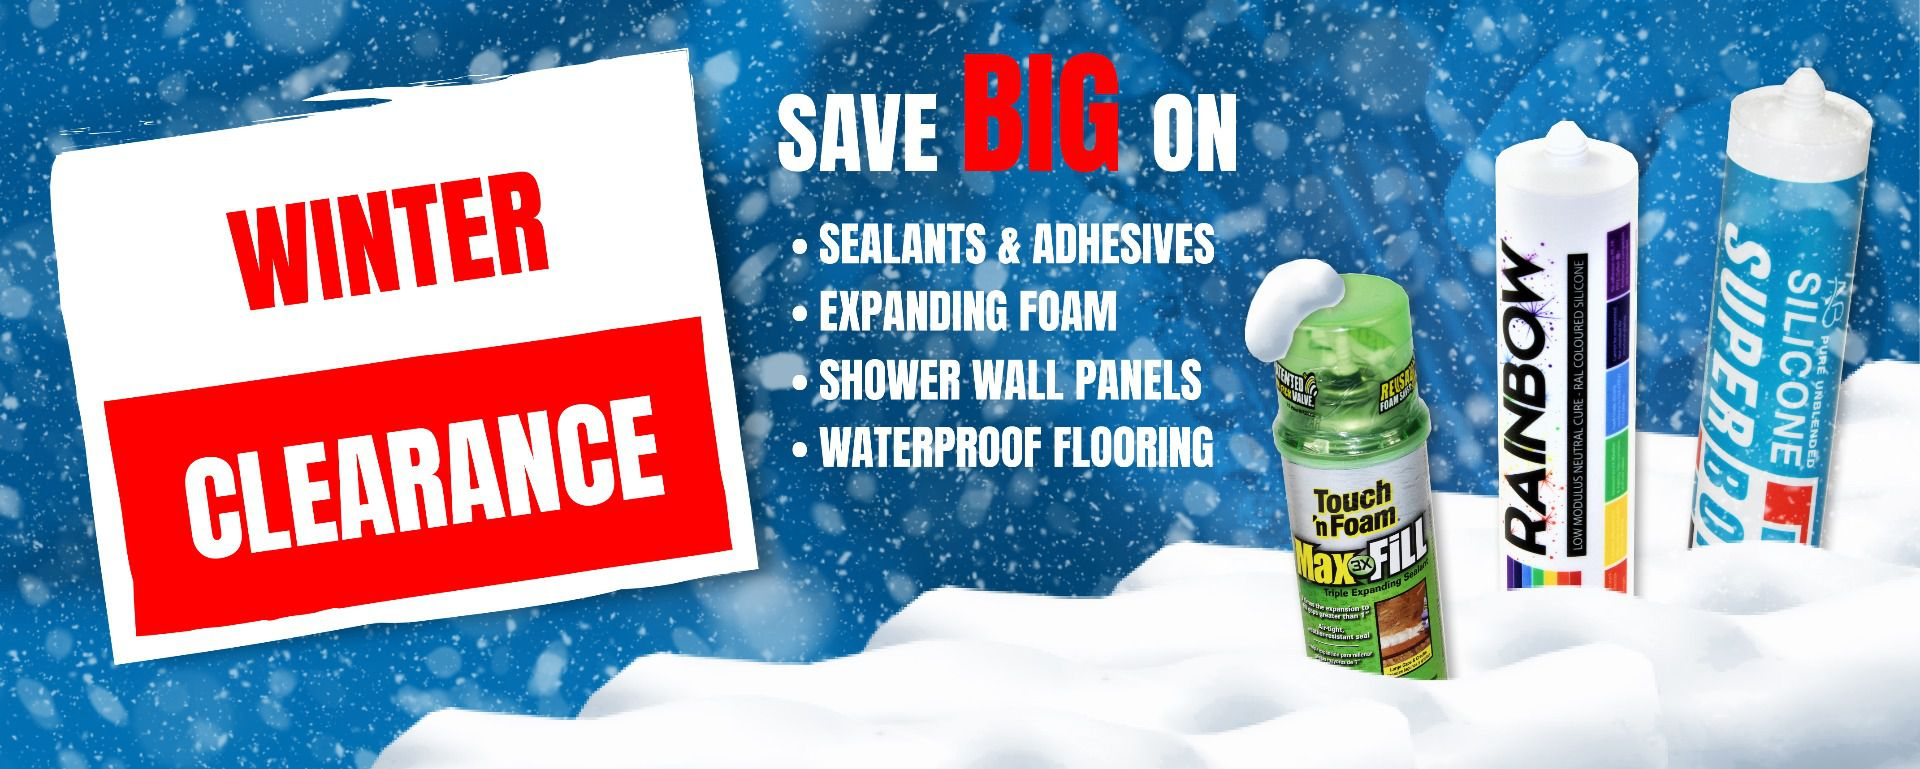 Winter Clearance Banner